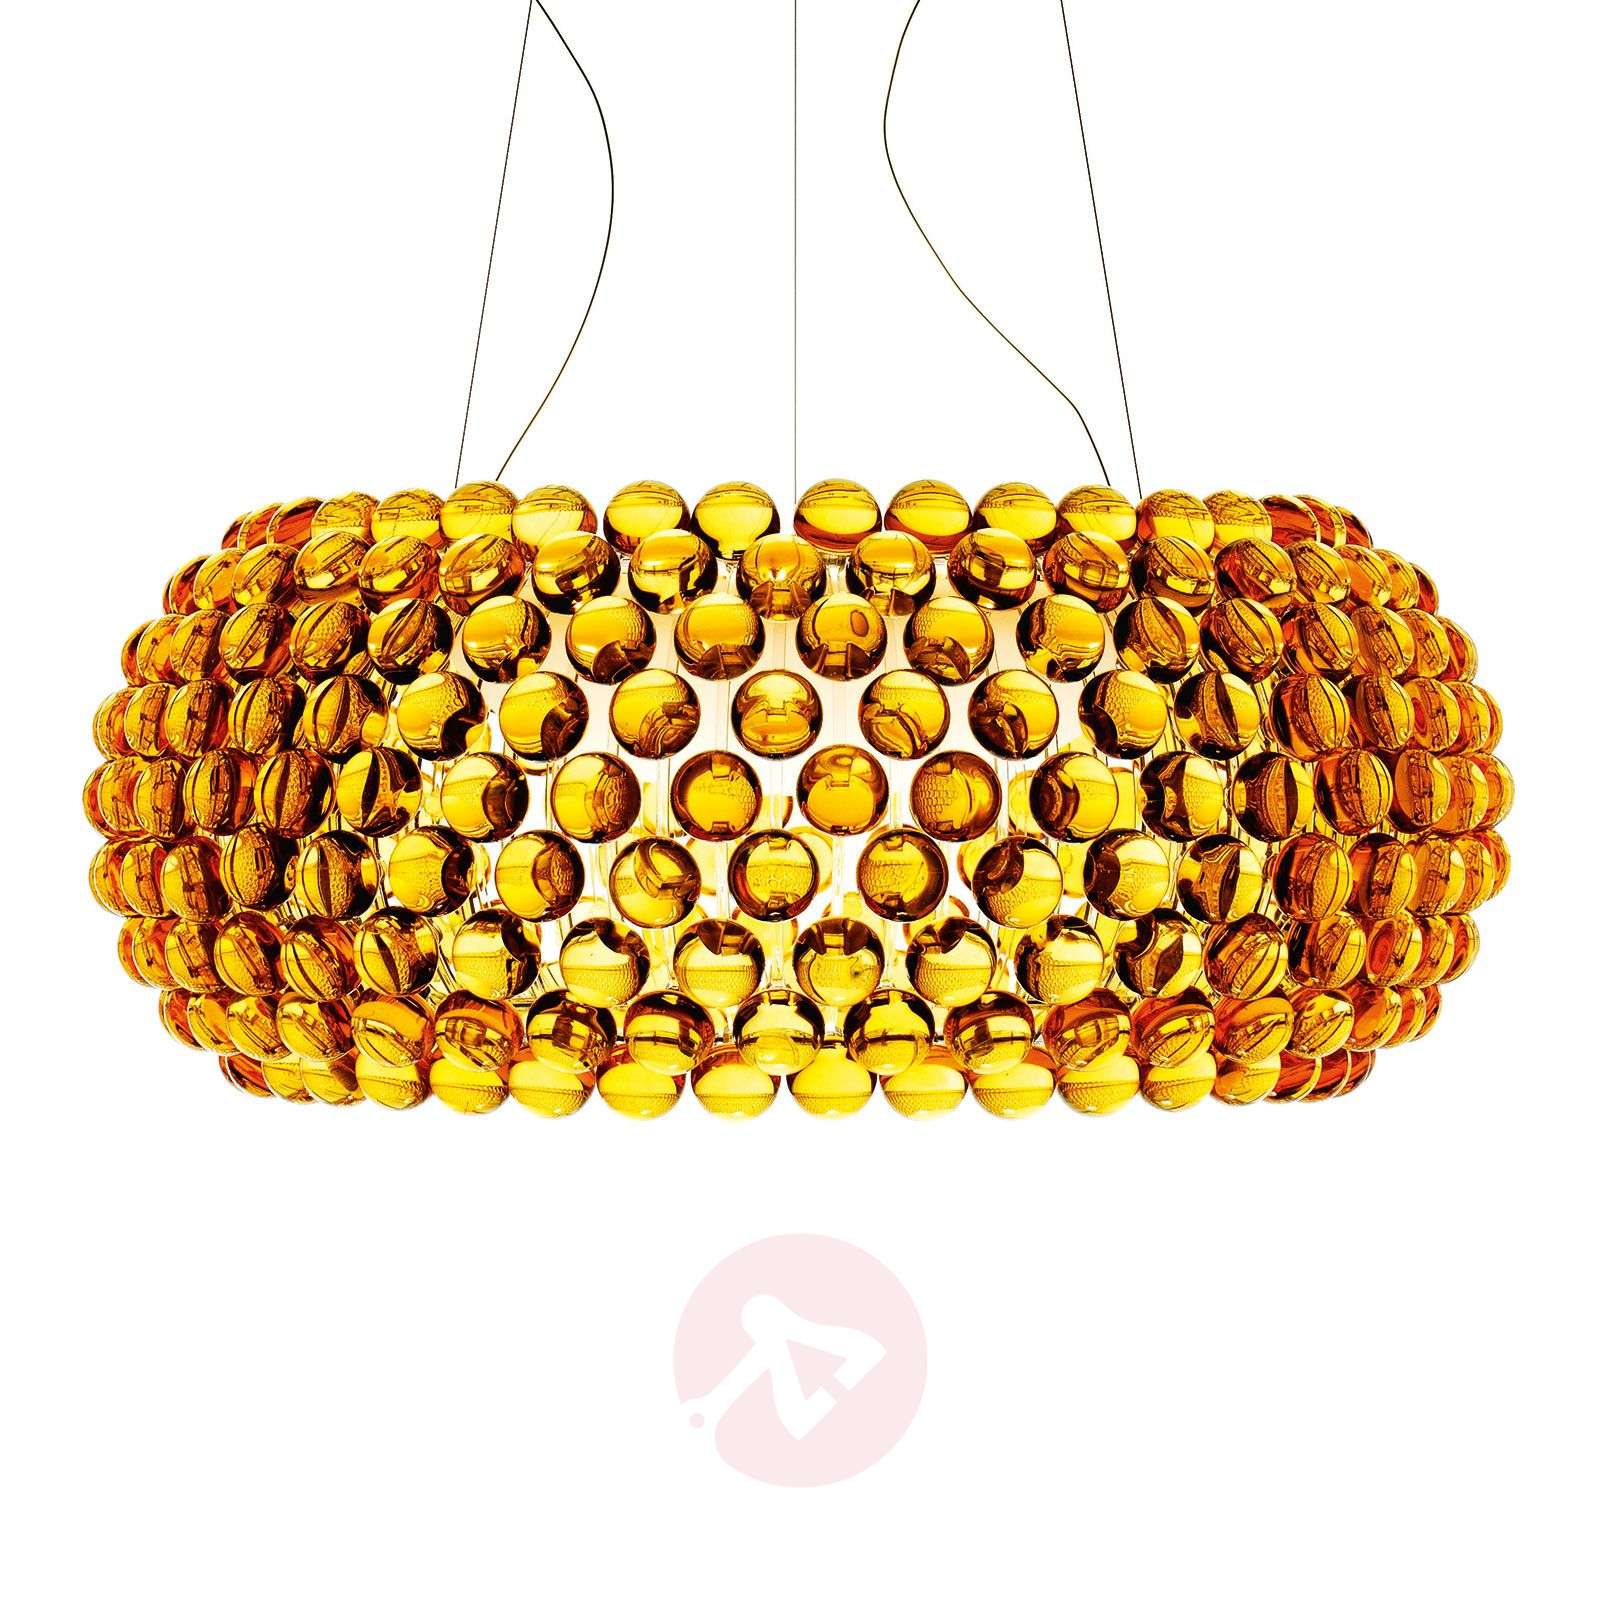 Foscarini MyLight Caboche media, LED hanging light-3560169X-01